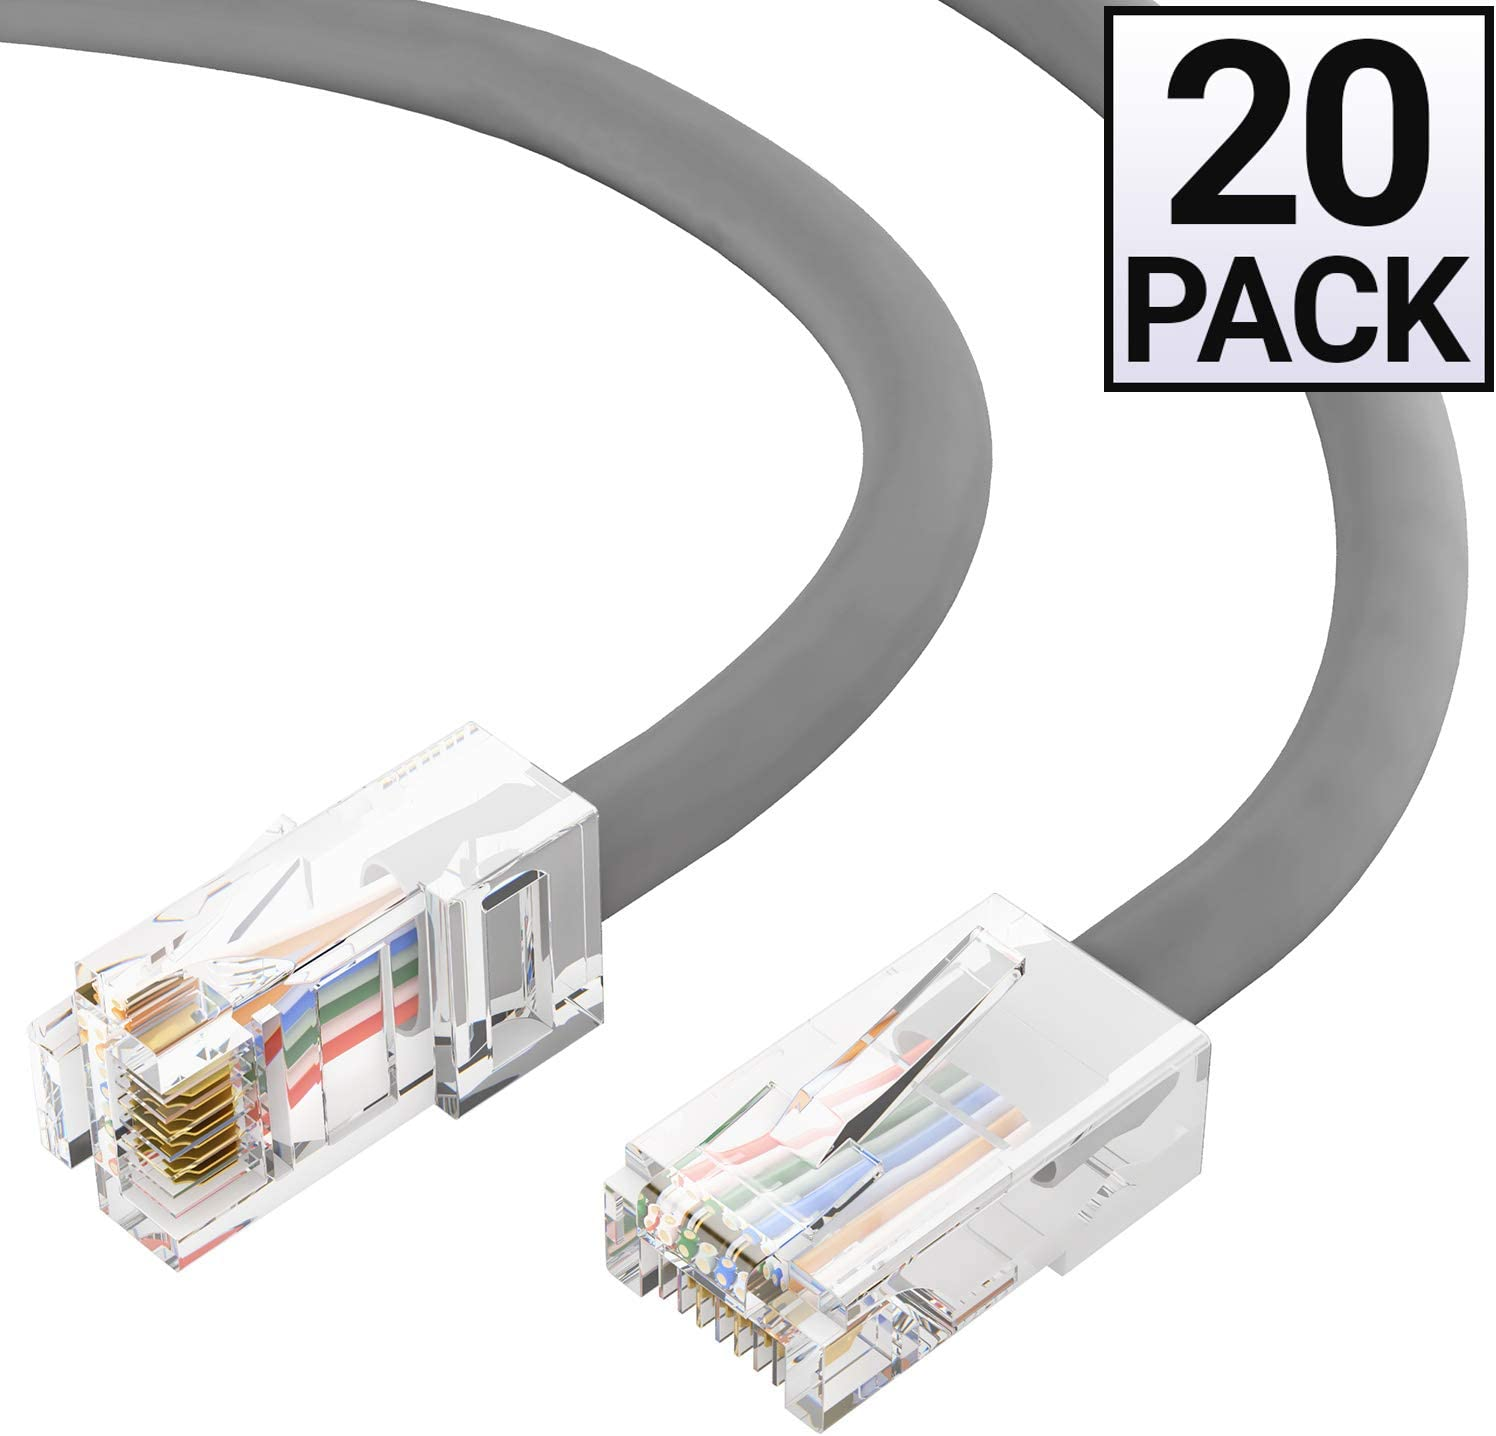 GOWOS 20-Pack CMP Cat5e Plenum Ethernet Cable 1 Feet - Gray RJ45 10Gbps High Speed LAN Internet Cord Available in 28 Lengths and 10 Colors Computer Network Cable with Bootless Connector